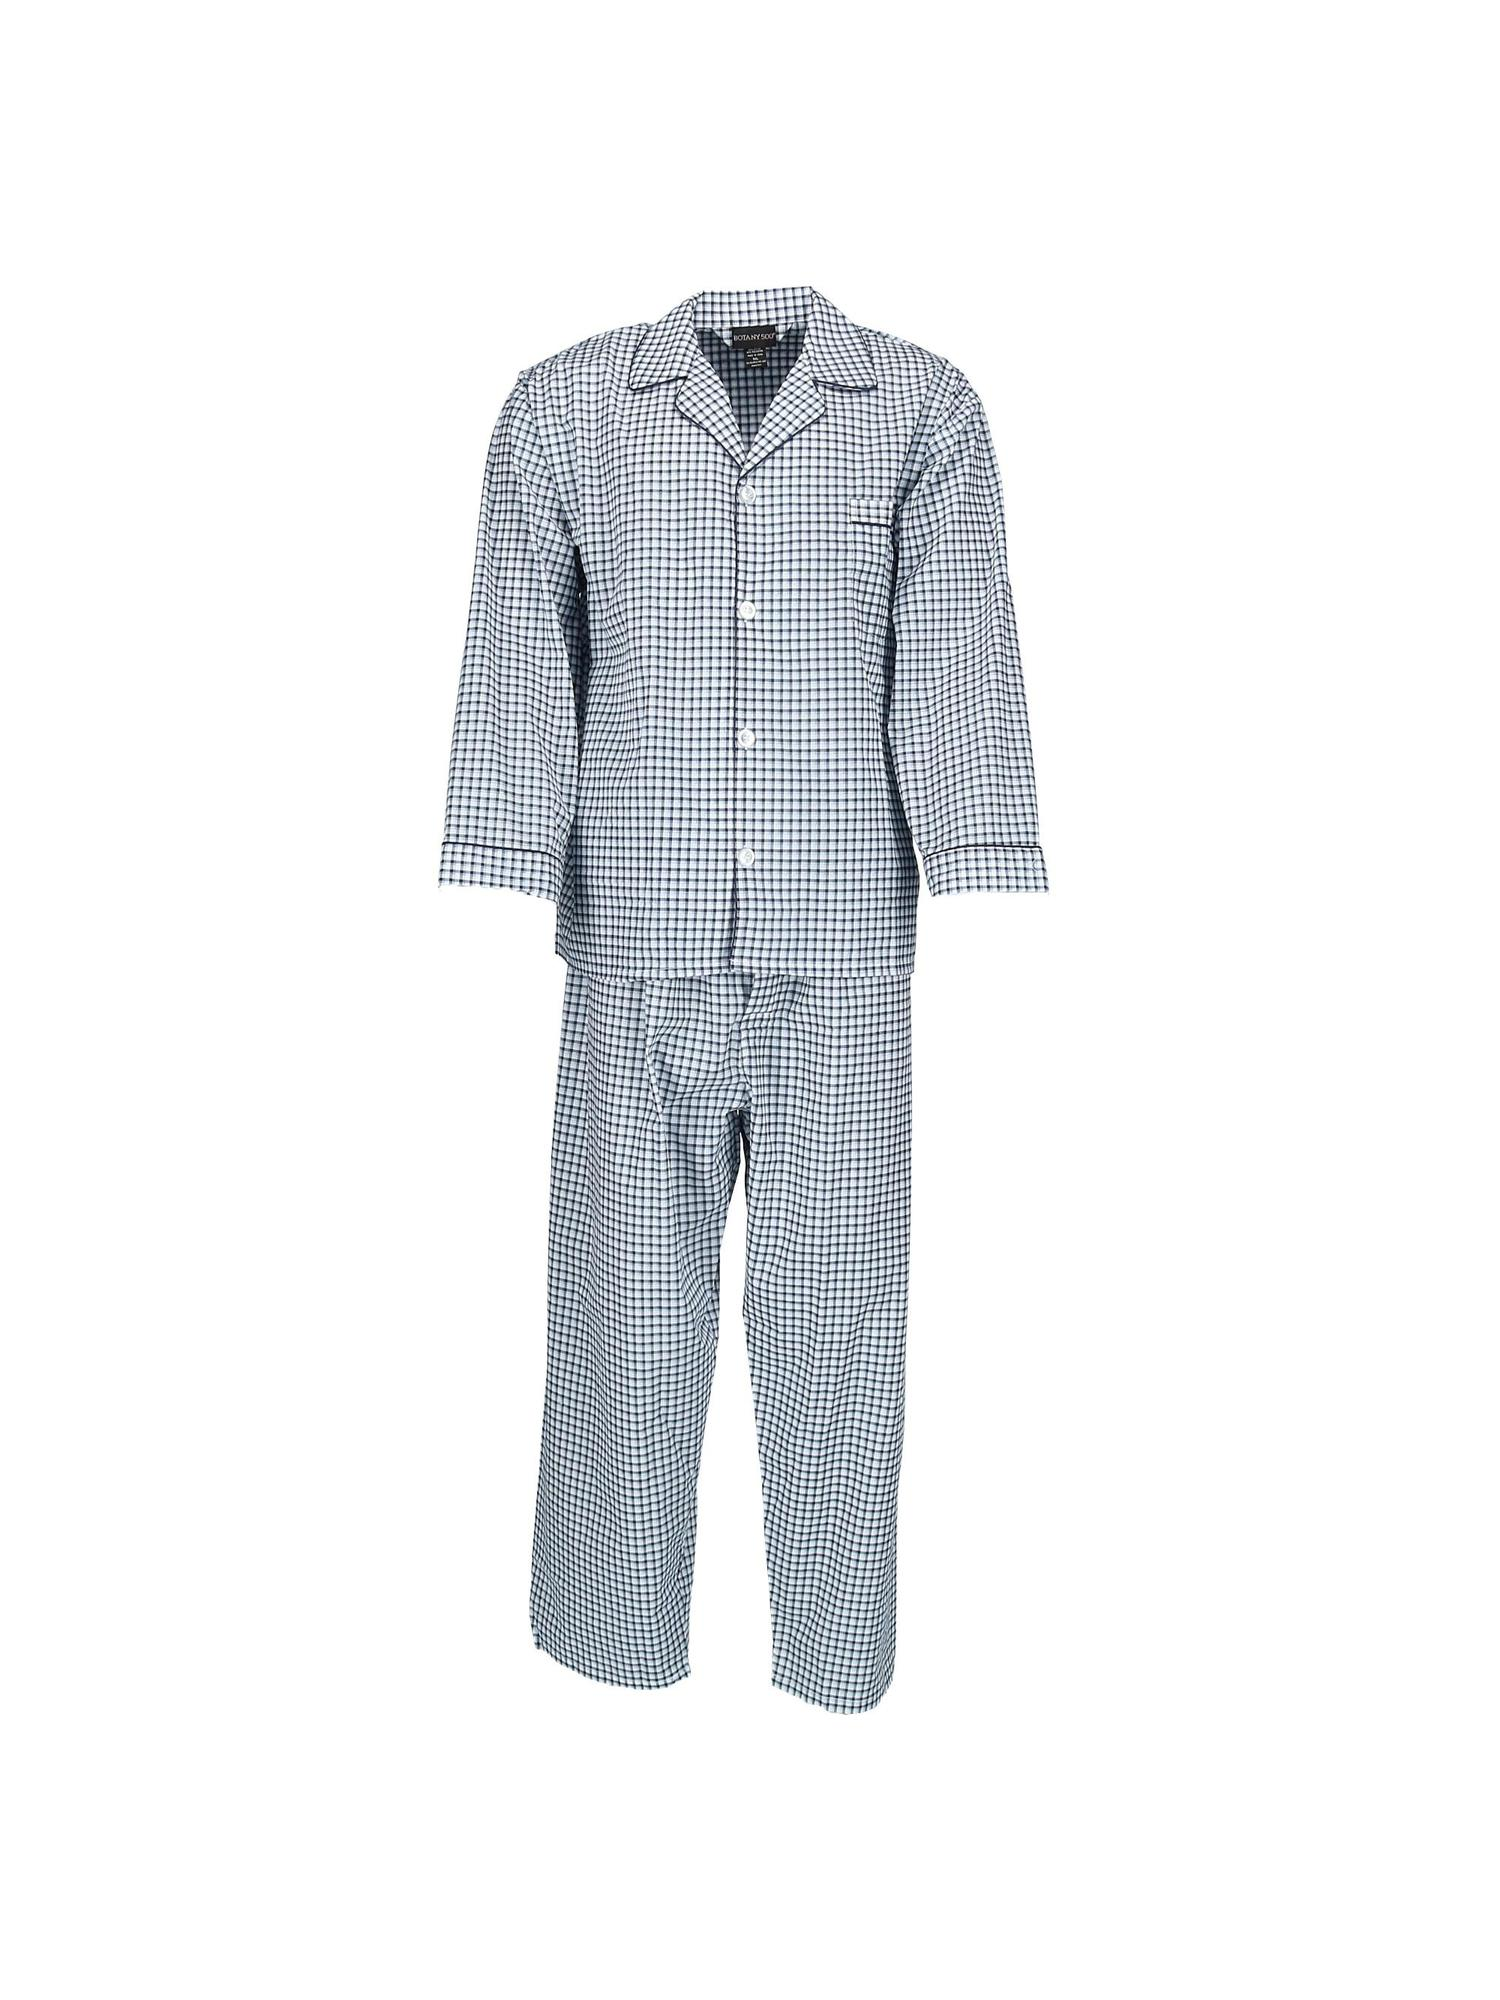 Botany 500 Size  1X Men's Long Sleeve Long Leg Pajama Set